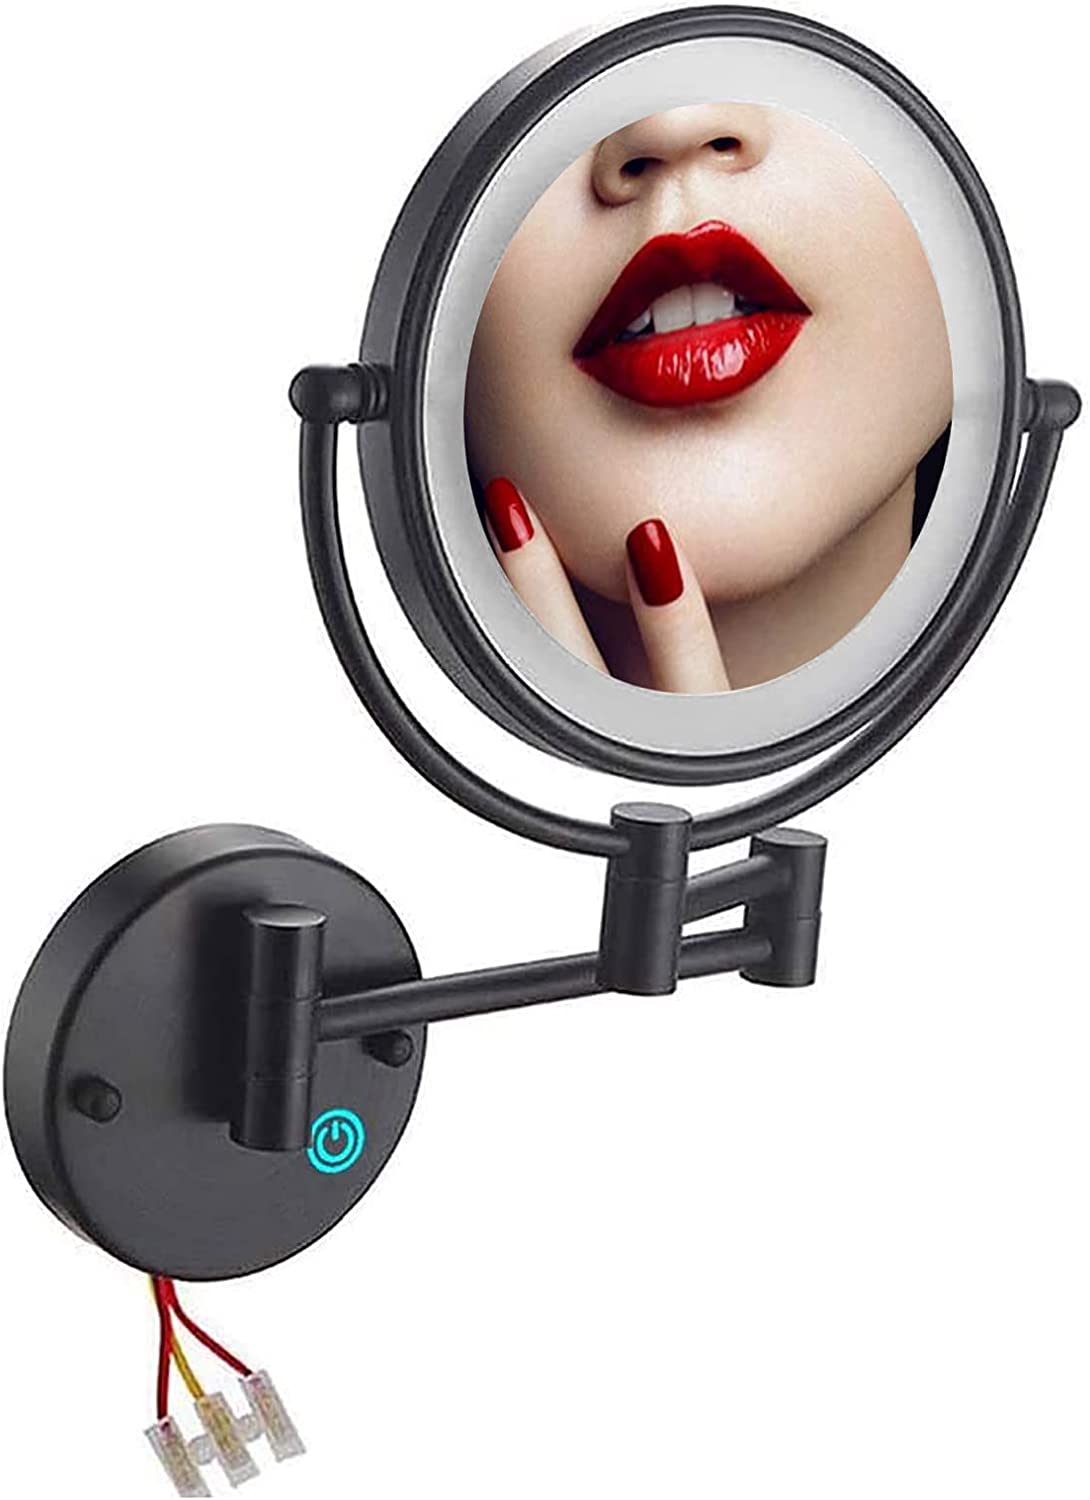 Qlhnyq Ranking TOP15 Lighted Makeup Mirror Wall Magnification Mount Popular overseas with 10X